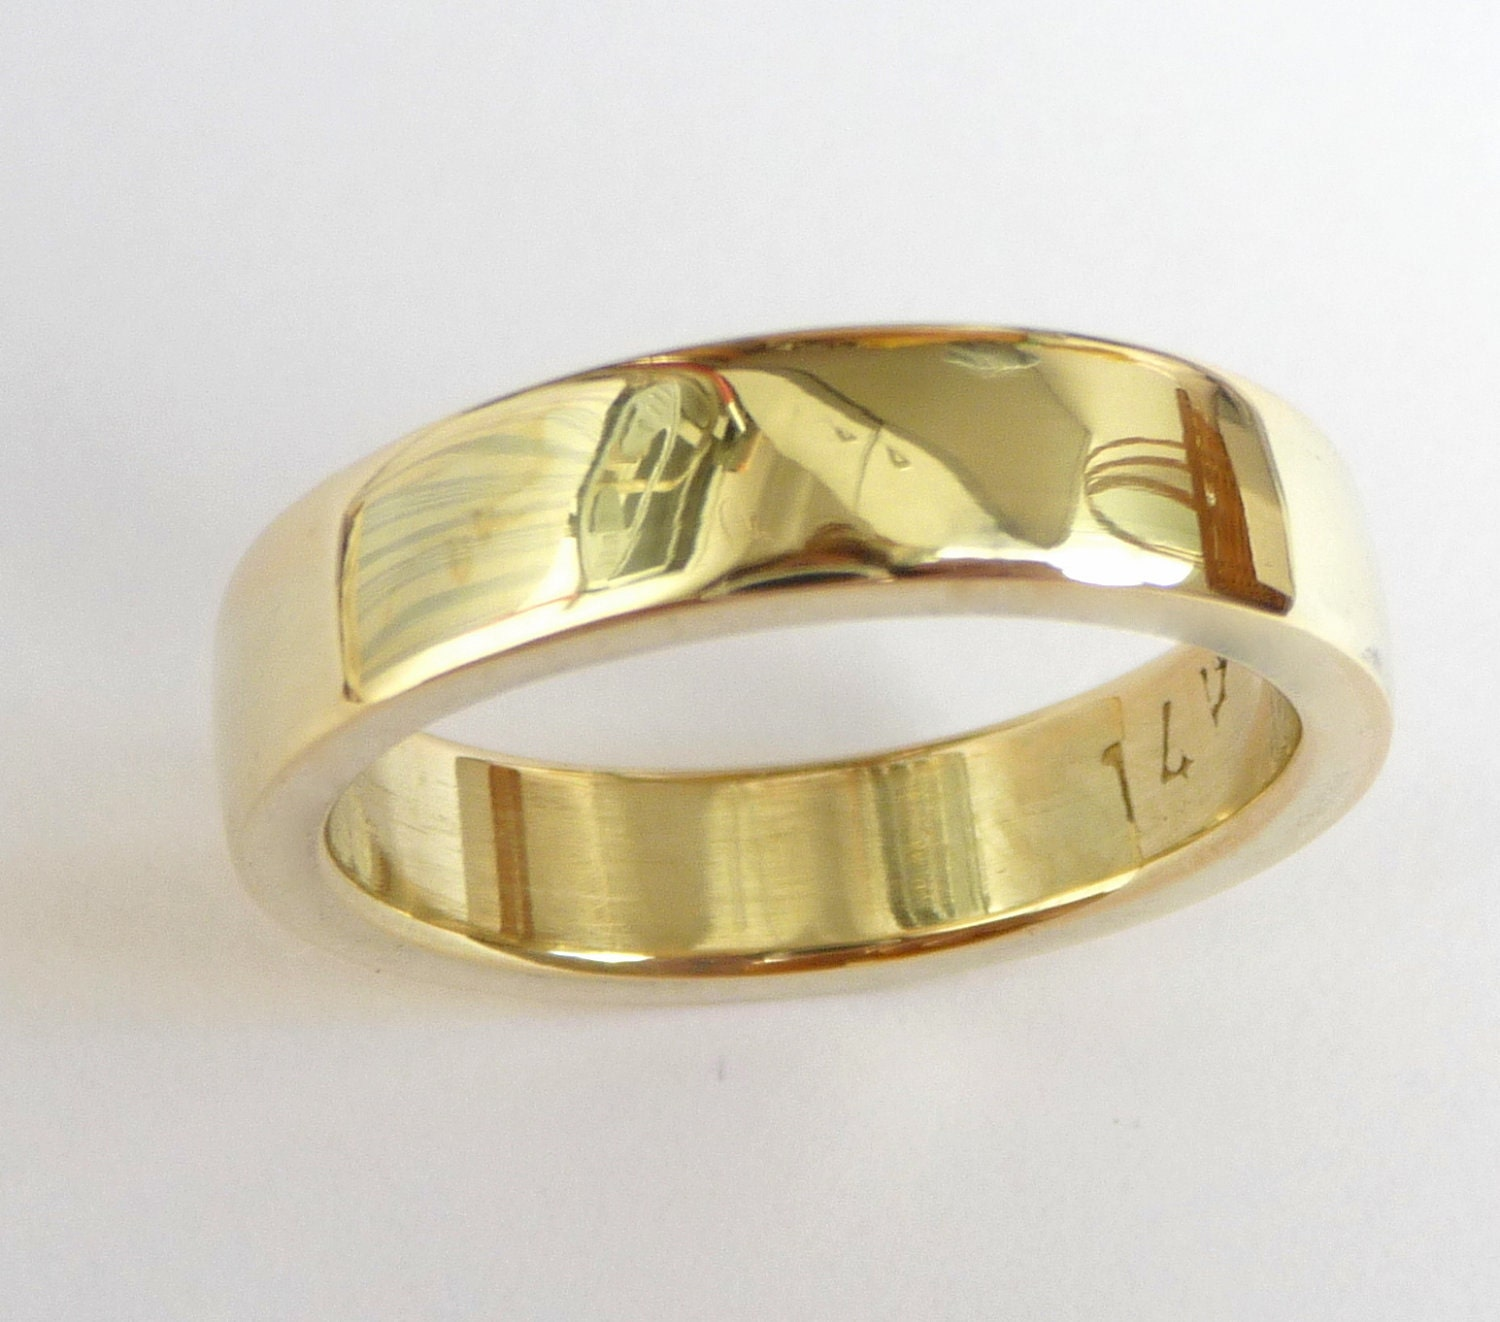 Mens wedding band men39s gold ring men wedding ring thick for Wedding gold rings for men